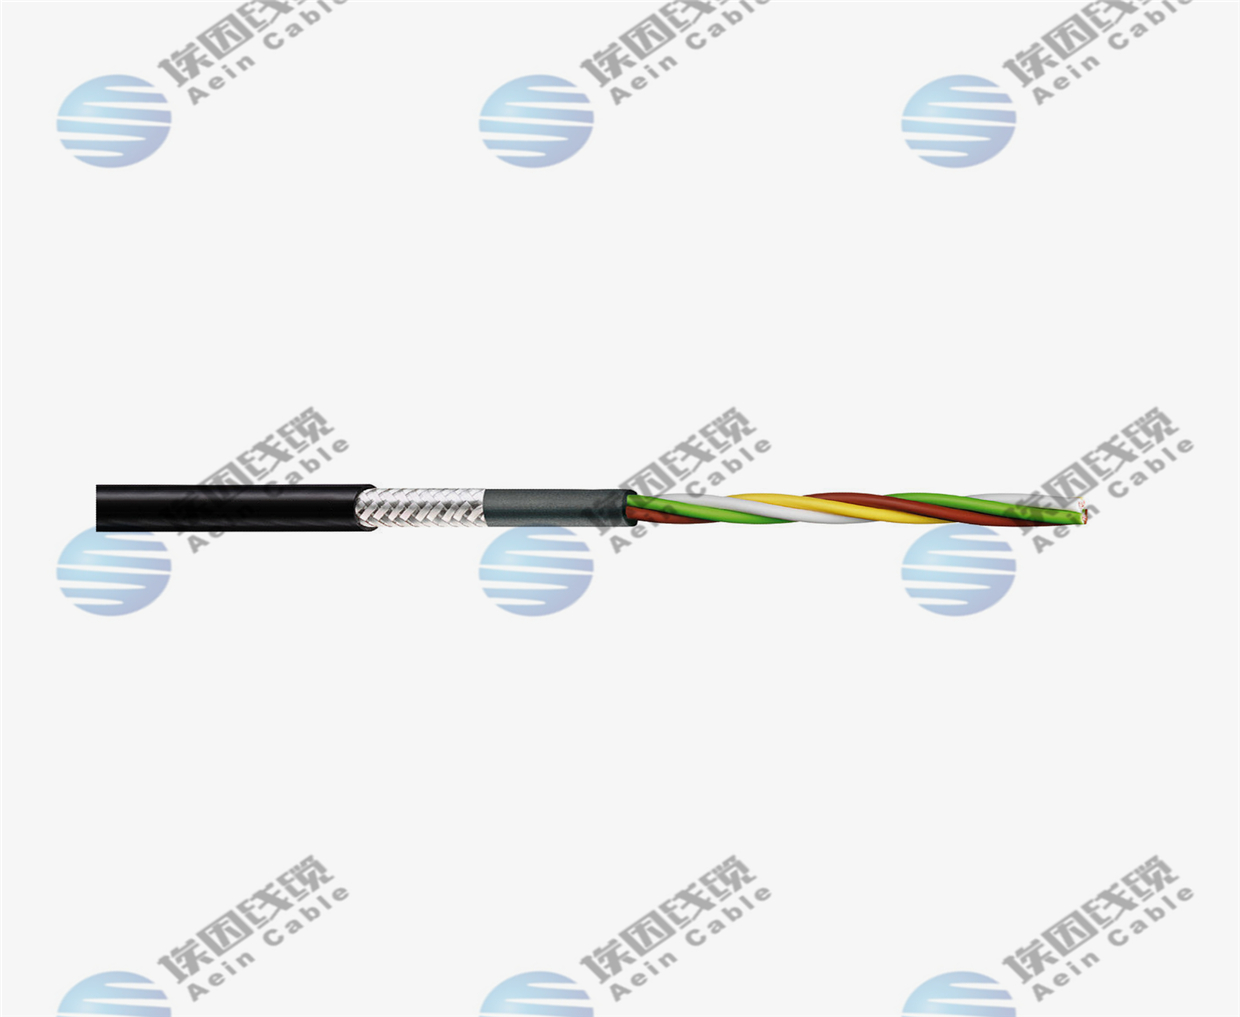 1e179c1a14ea114b4dfe1936ed4609b5_csm_traxline-bus-cables-can-bus-700-c_start_55d0620397